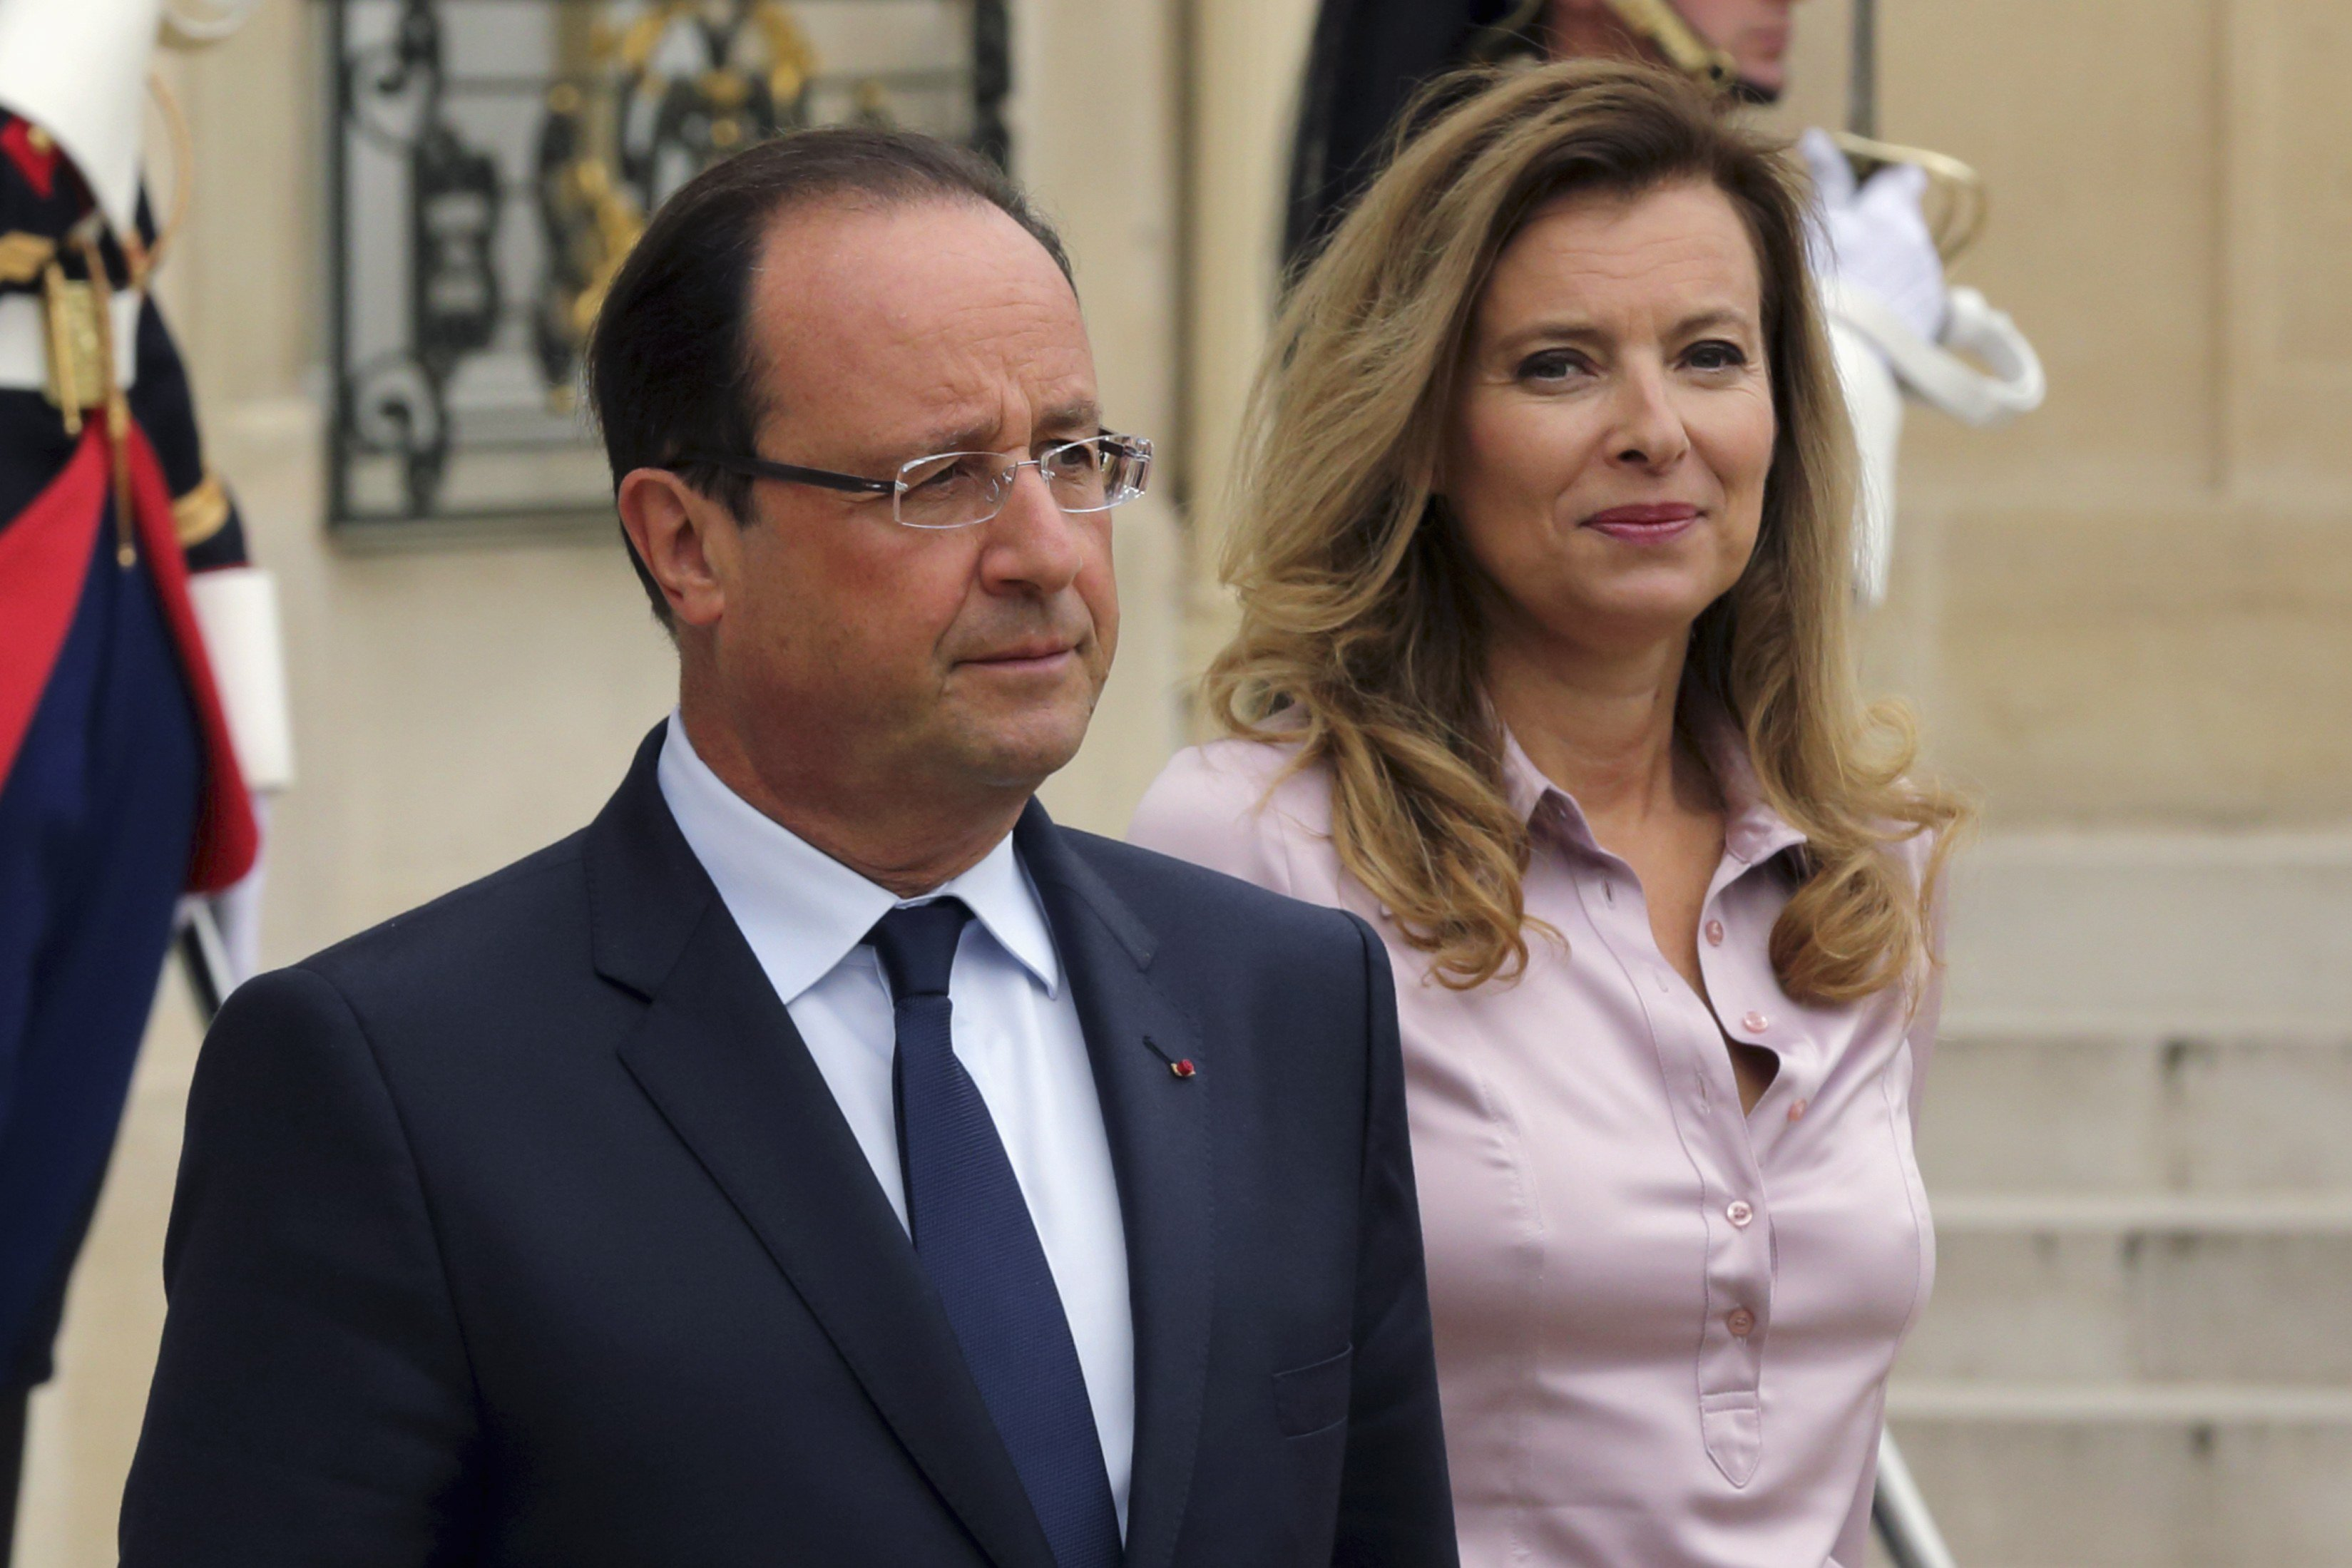 French President François Hollande and Valérie Trierweiler accompany guests following a meeting at the Élysée Palace in Paris on Oct. 1, 2013